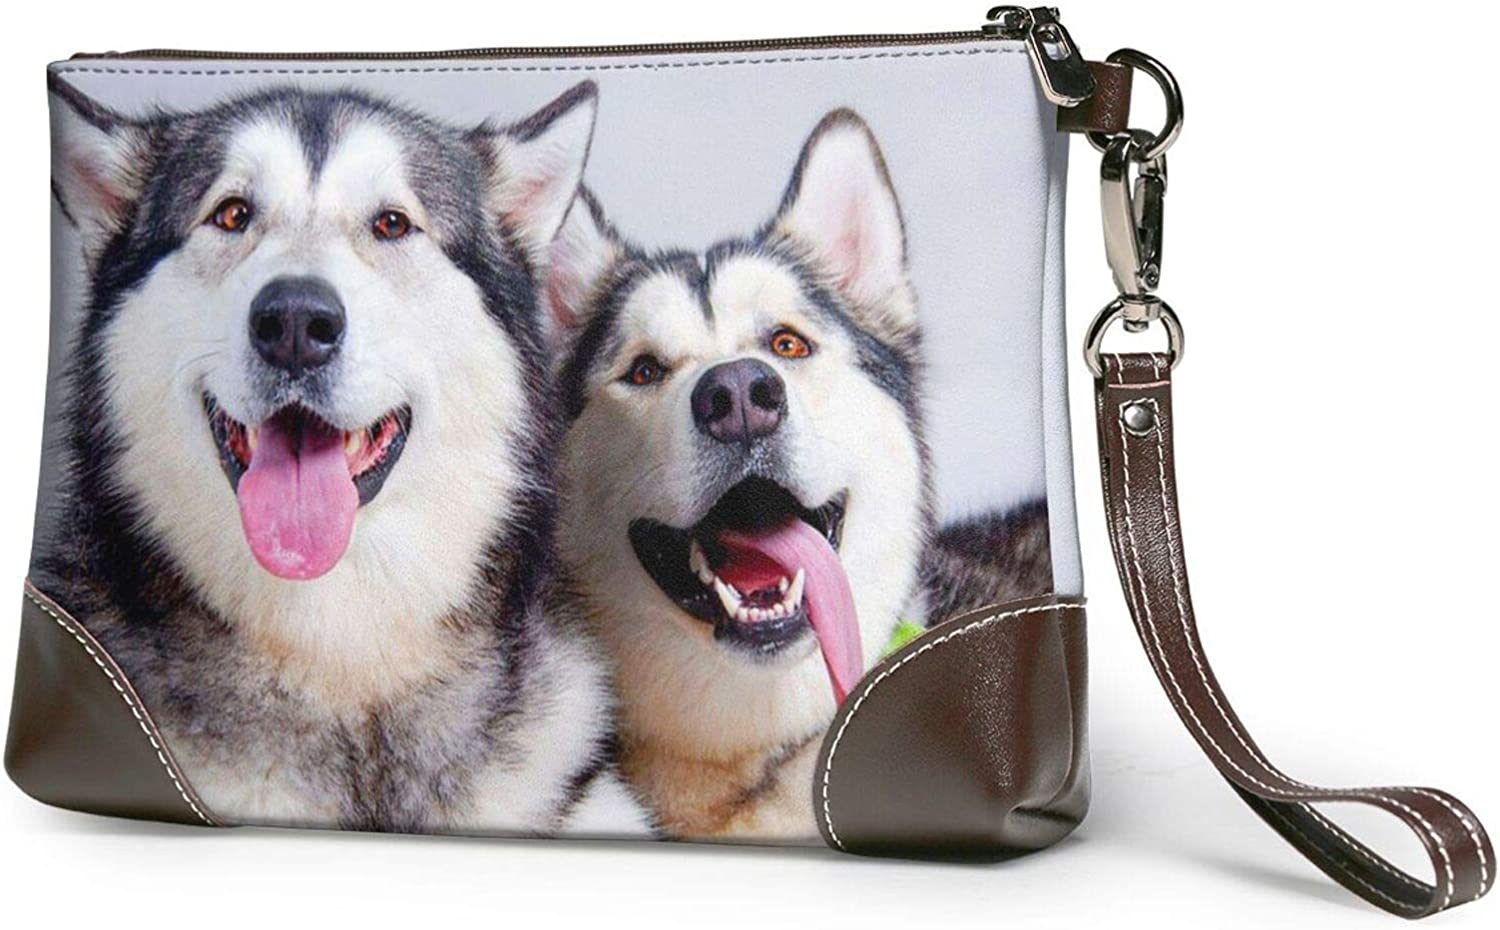 Puppy Dog Clutch Inexpensive Purses Wallet Wristlet Seasonal Wrap Introduction Leather Ha